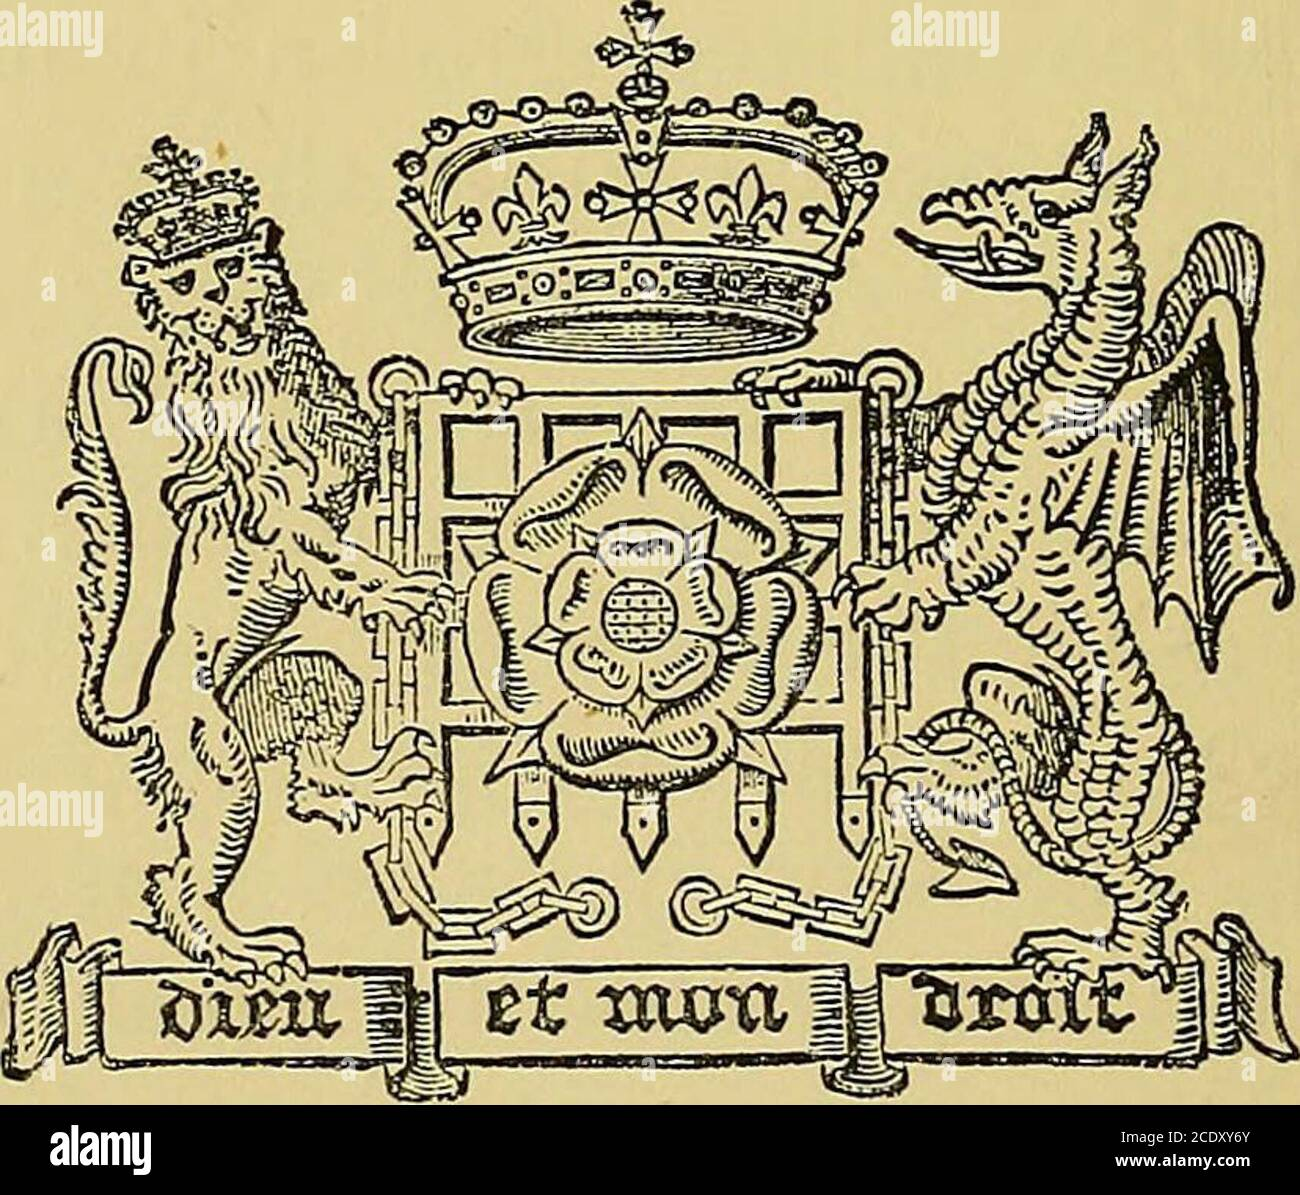 The Year After The Armada And Other Historical Studies Al Power To The Old Grand Inqui Sitor To Sentence Froilan To Whatever Punishment Heliked Without More Ado And The Council Of